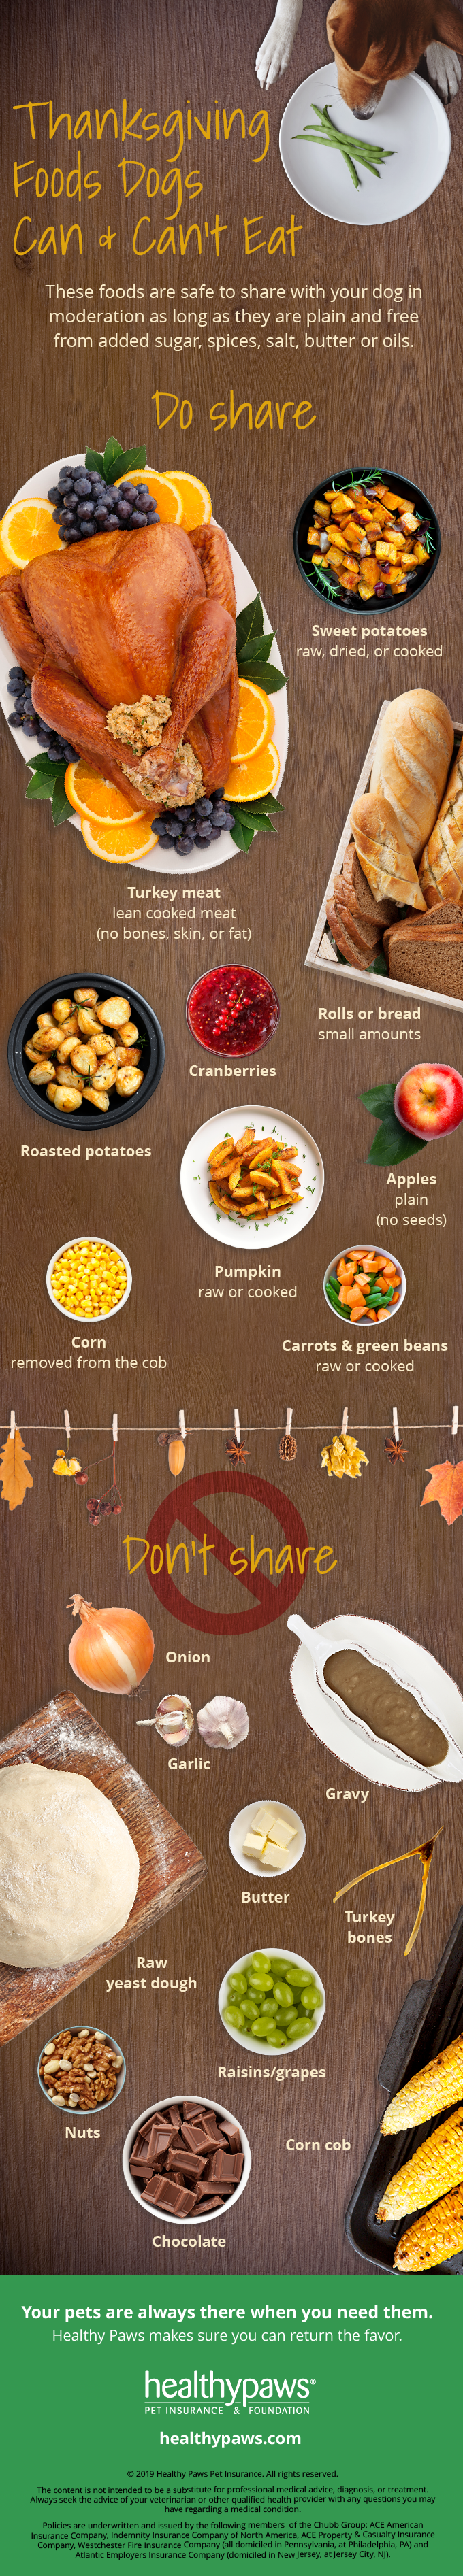 Thanksgiving foods pets infographic